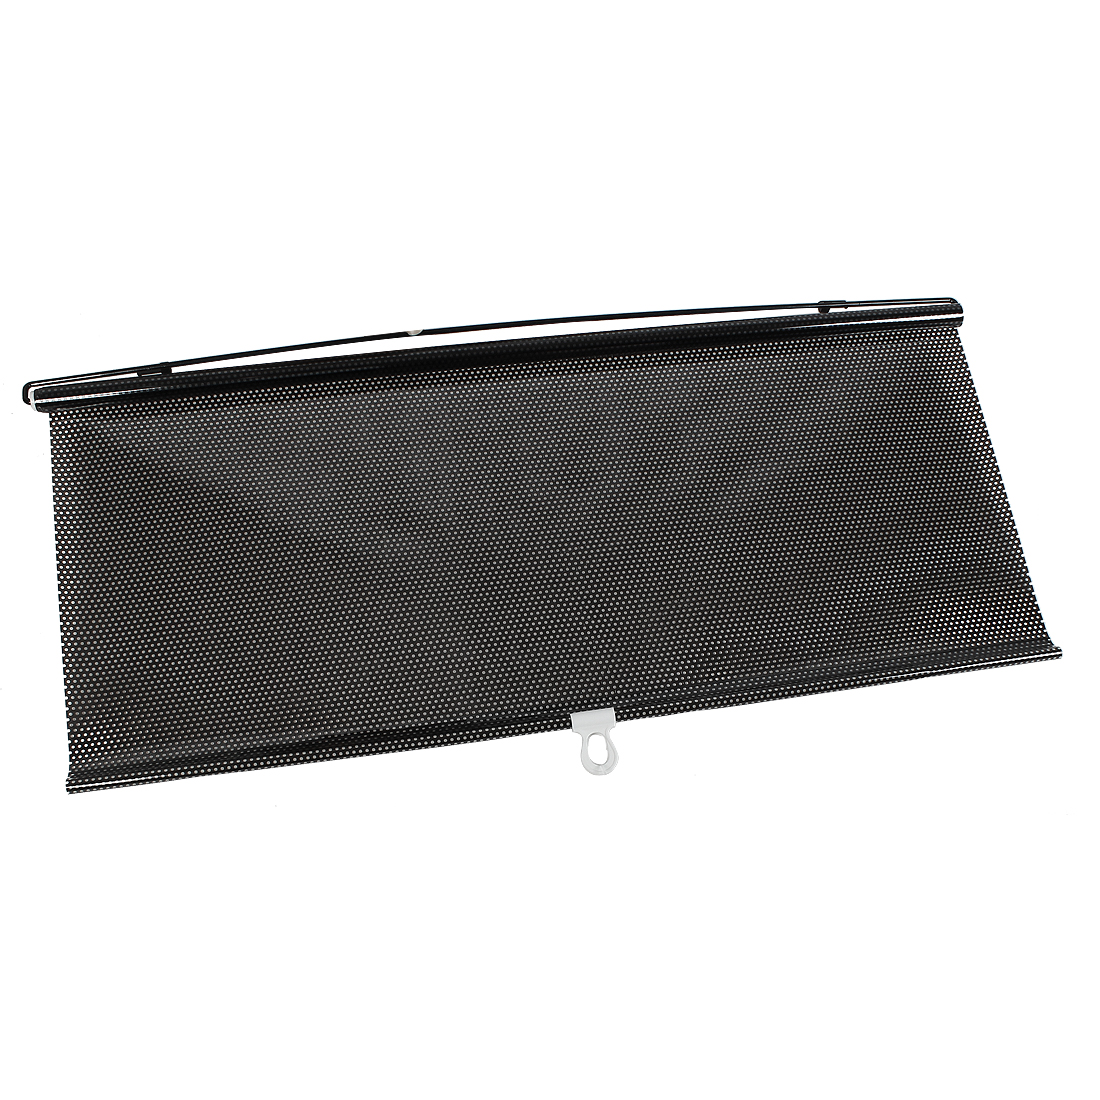 Car Auto Sun Shade Window Screen Cover Retractable Sunshade Protector 130cm x 68cm